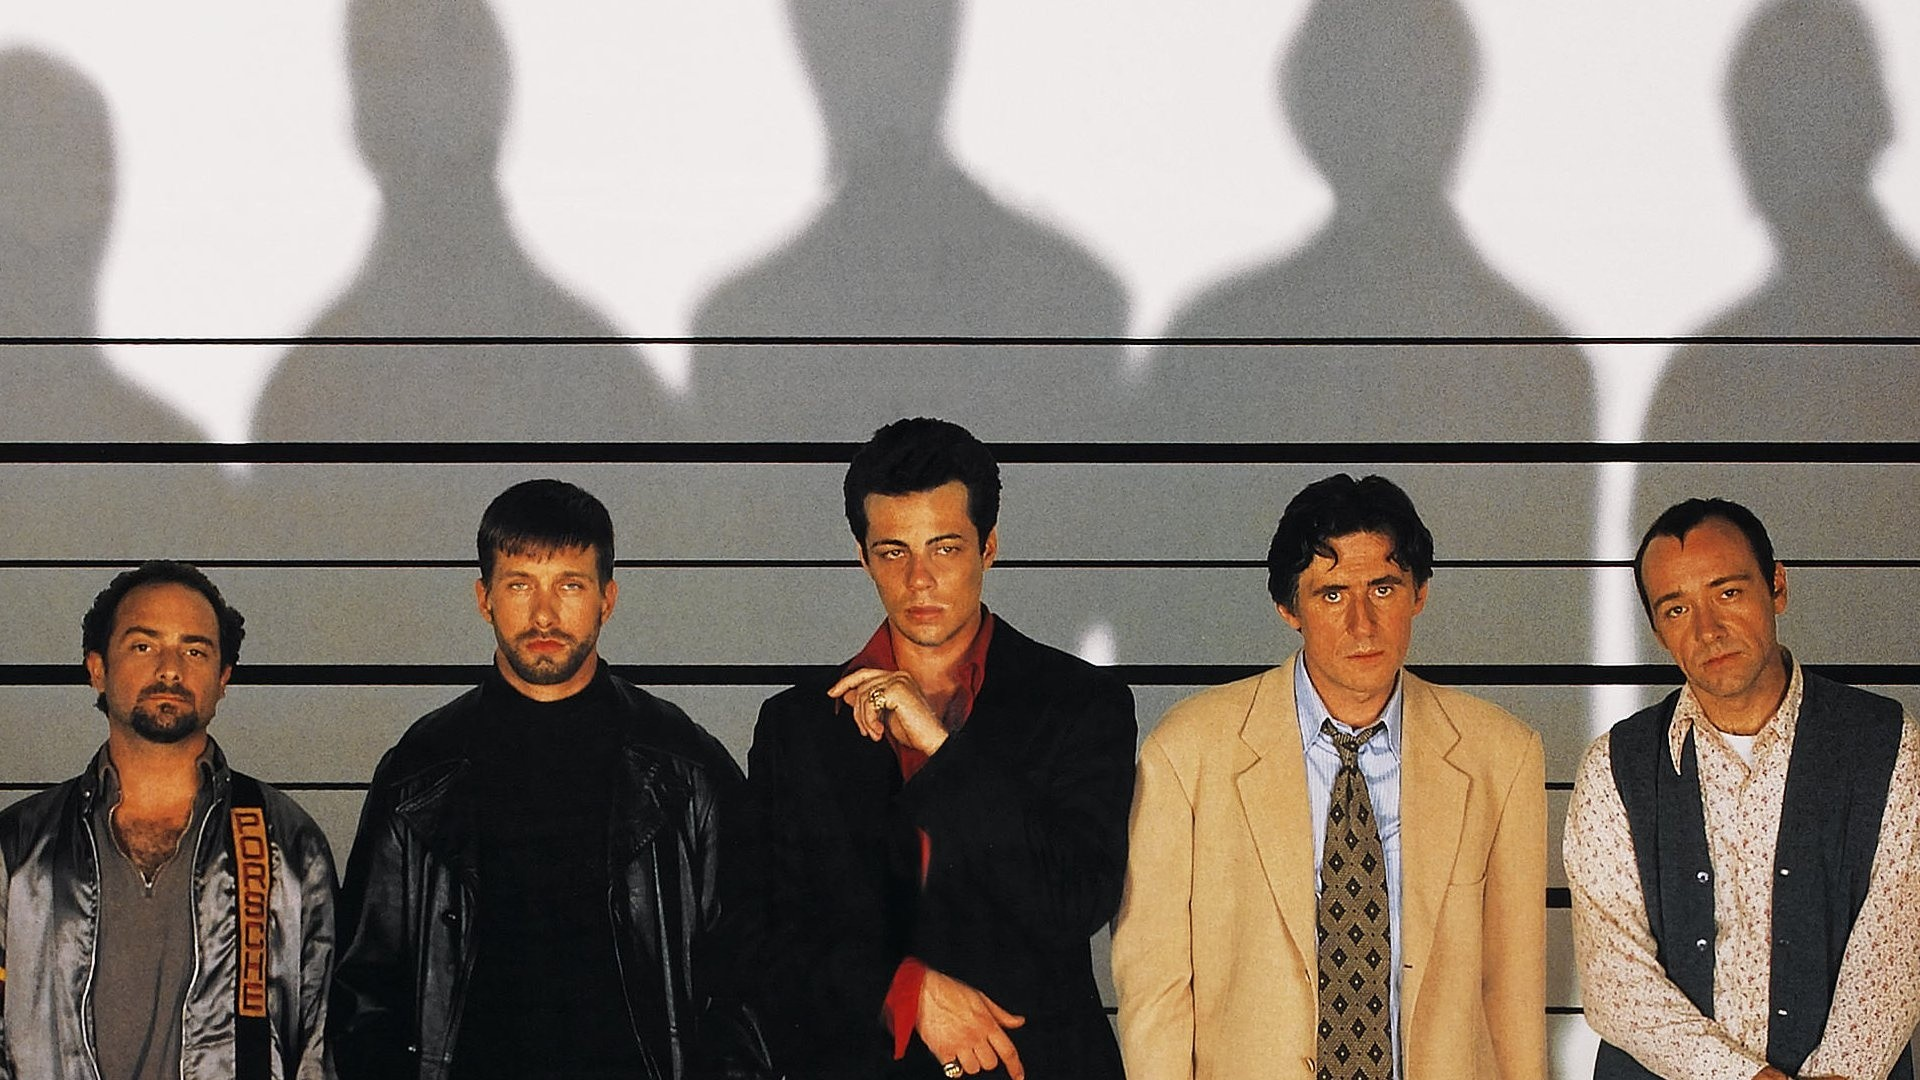 The Usual Suspects Pics, Movie Collection